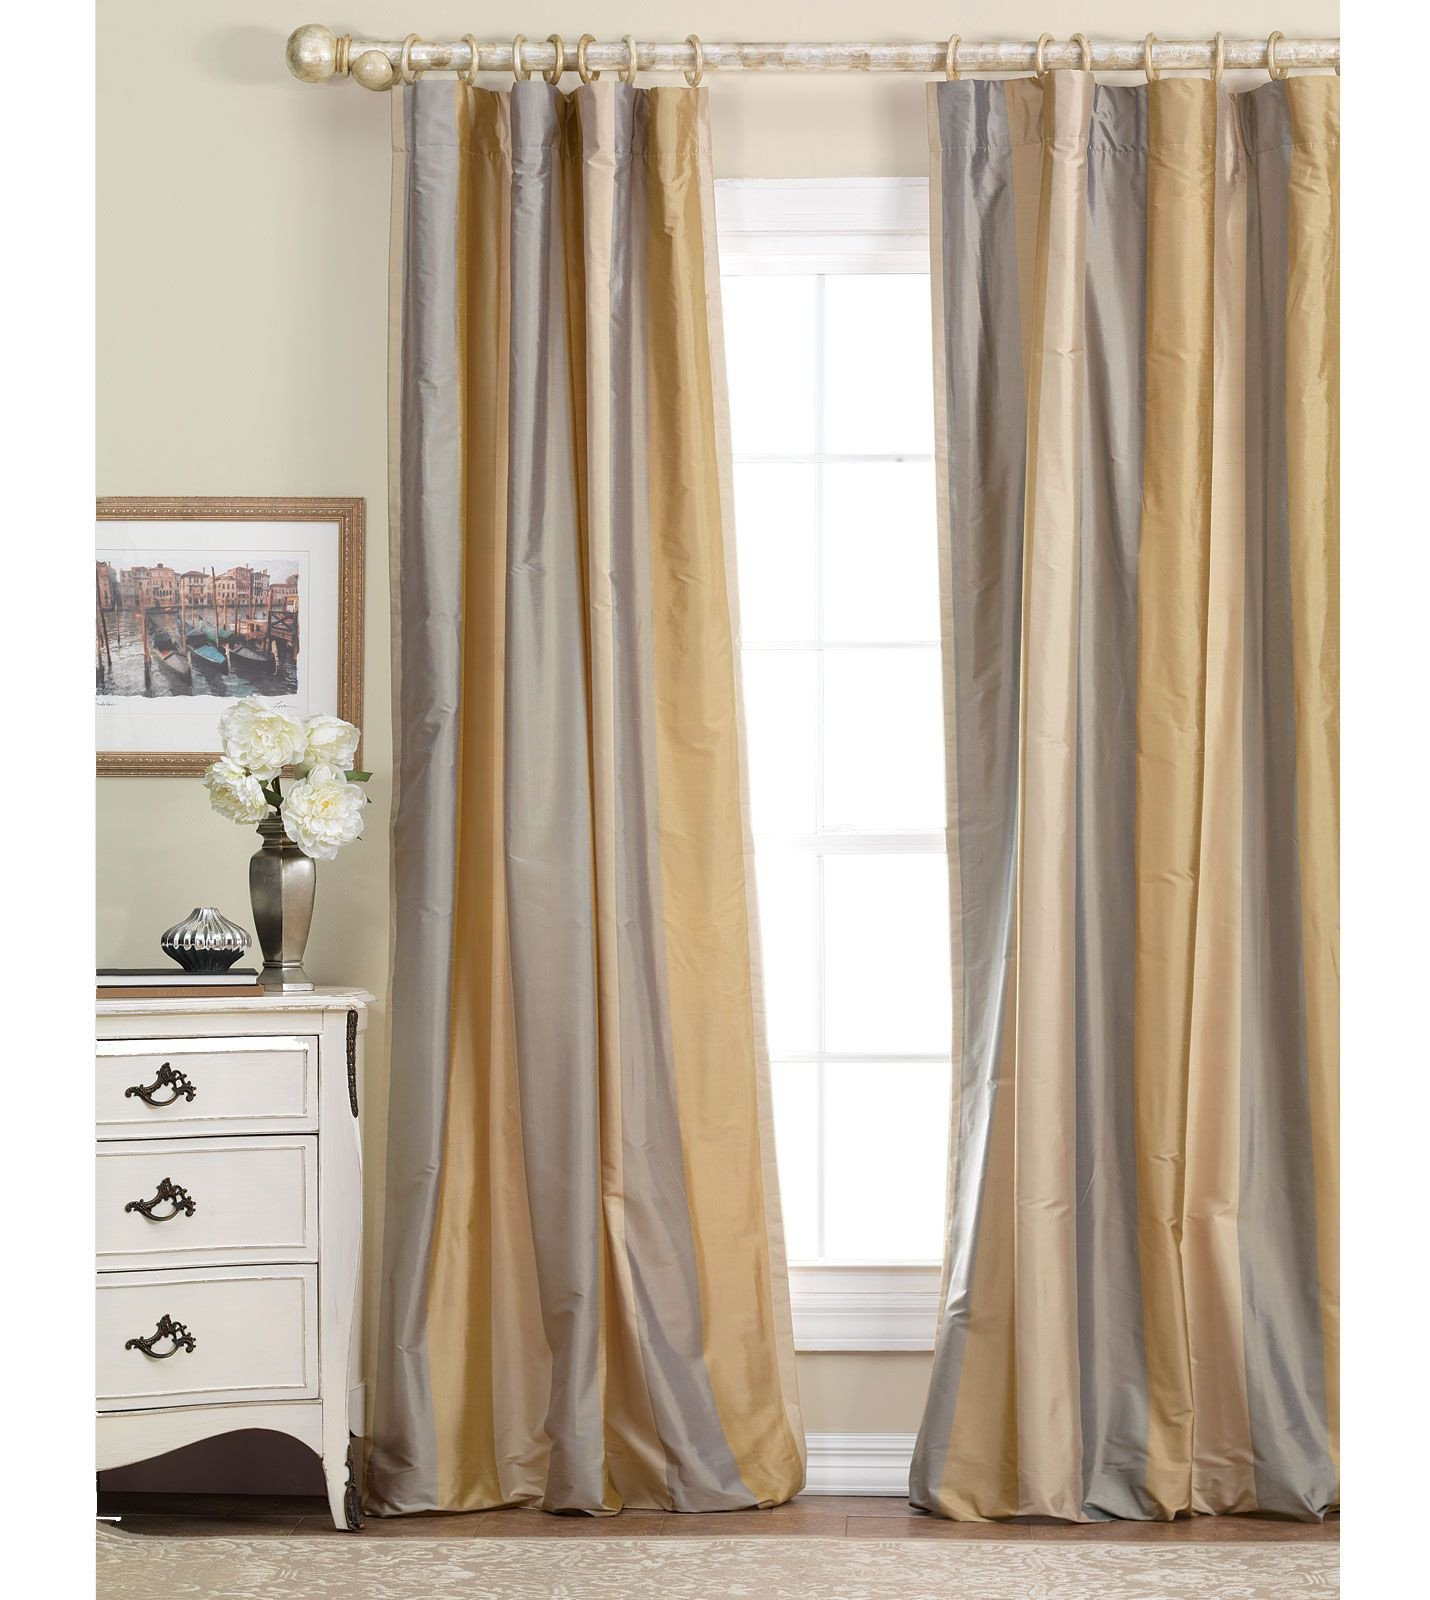 Gray and Gold Bedroom Elegant Gold and Gray Silk Curtains